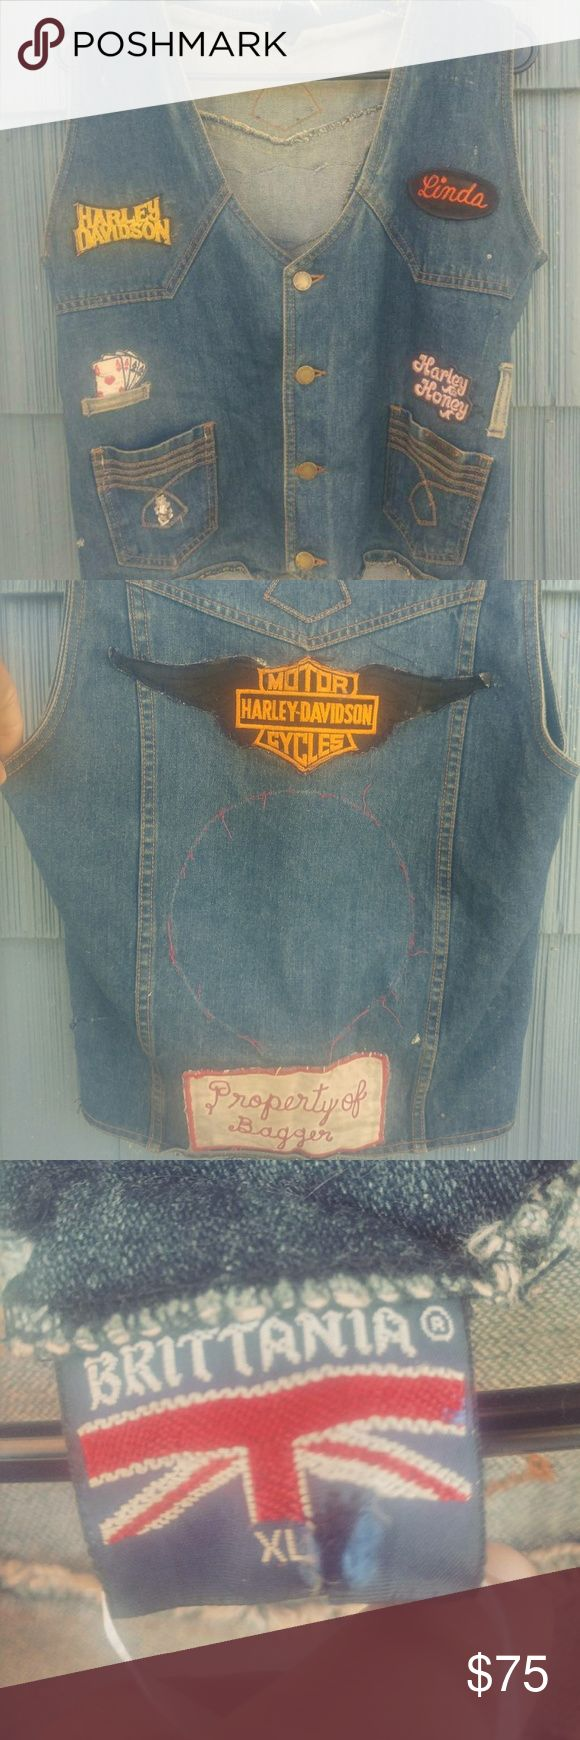 Vintage 70s denim biker vest with patches Vintage 70s badass biker vest with original patches, size xl great condition would fit a modern large .... The patches alone are worth a lot especially the harley davidson patch. Own a piece of biker history ! This is an original vintage piece not a replica. Vest is in great condition britannia Tops